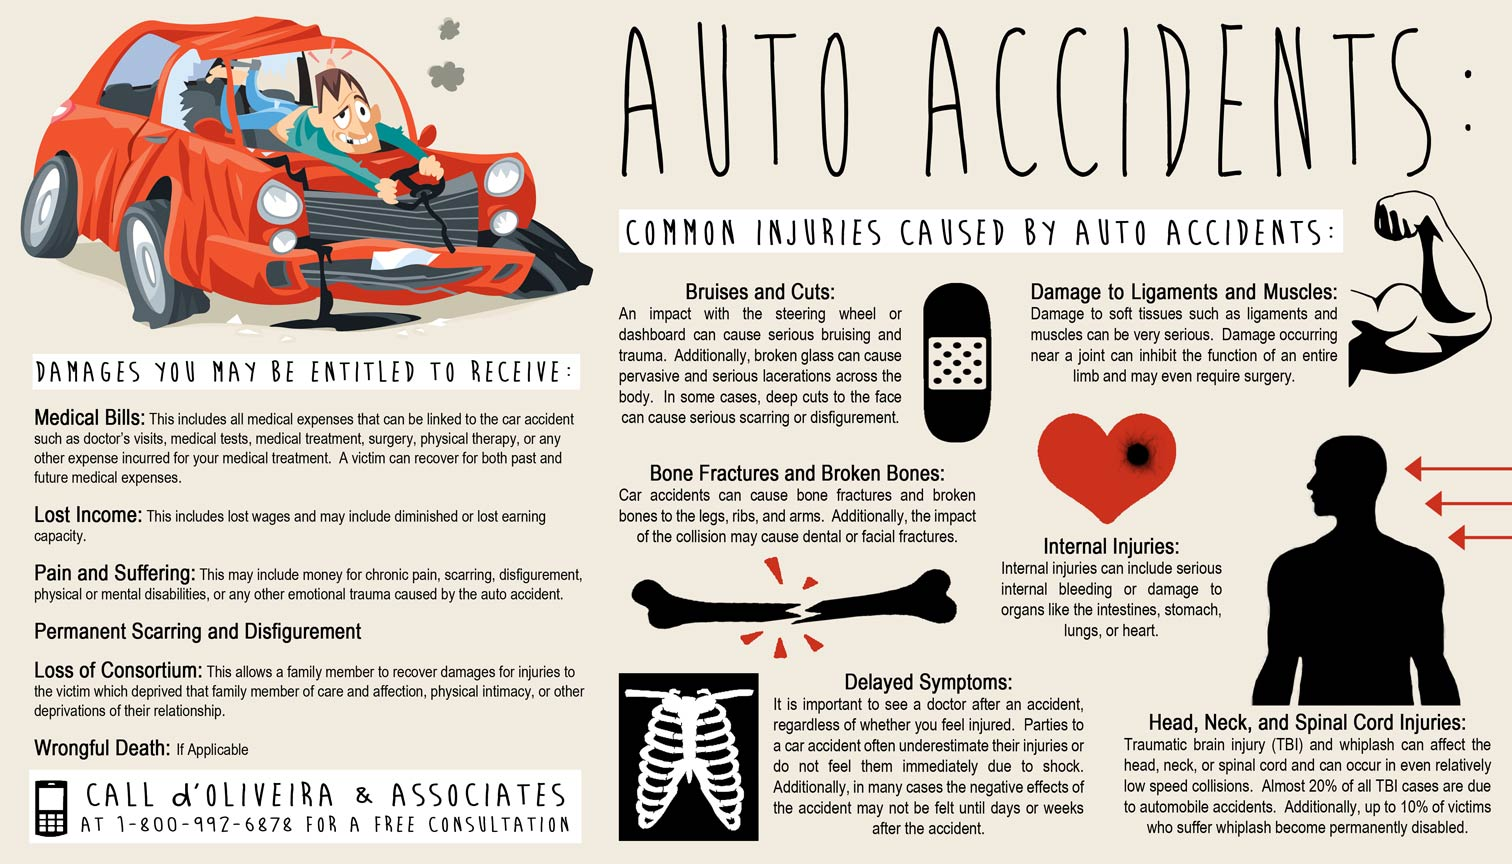 Safest car color accidents - D Oliveira Associates Auto Accident Injuries And Compensation Info Graphic